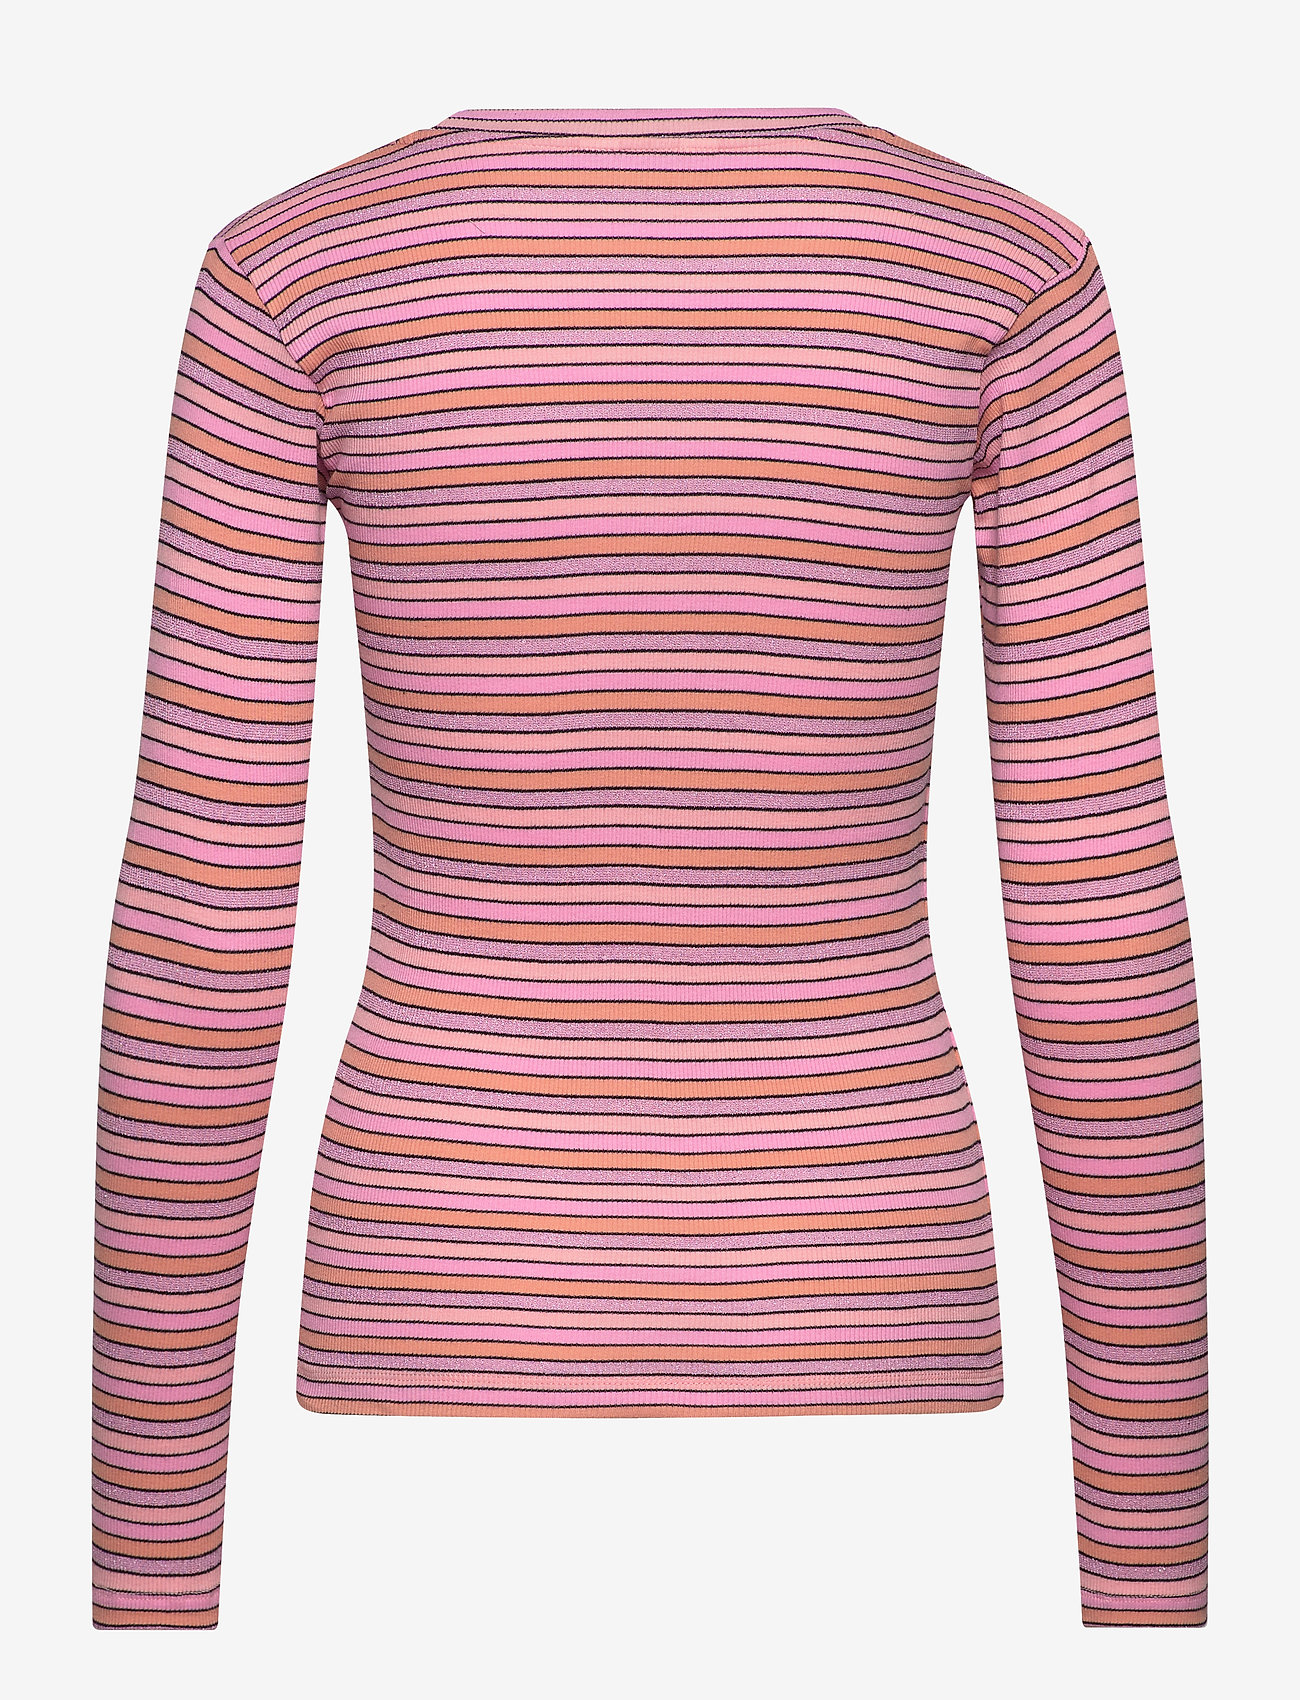 2x2 Joy Stripe Tuba   - Mads Nørgaard -  Women's T-shirts & Tops Top-Rated